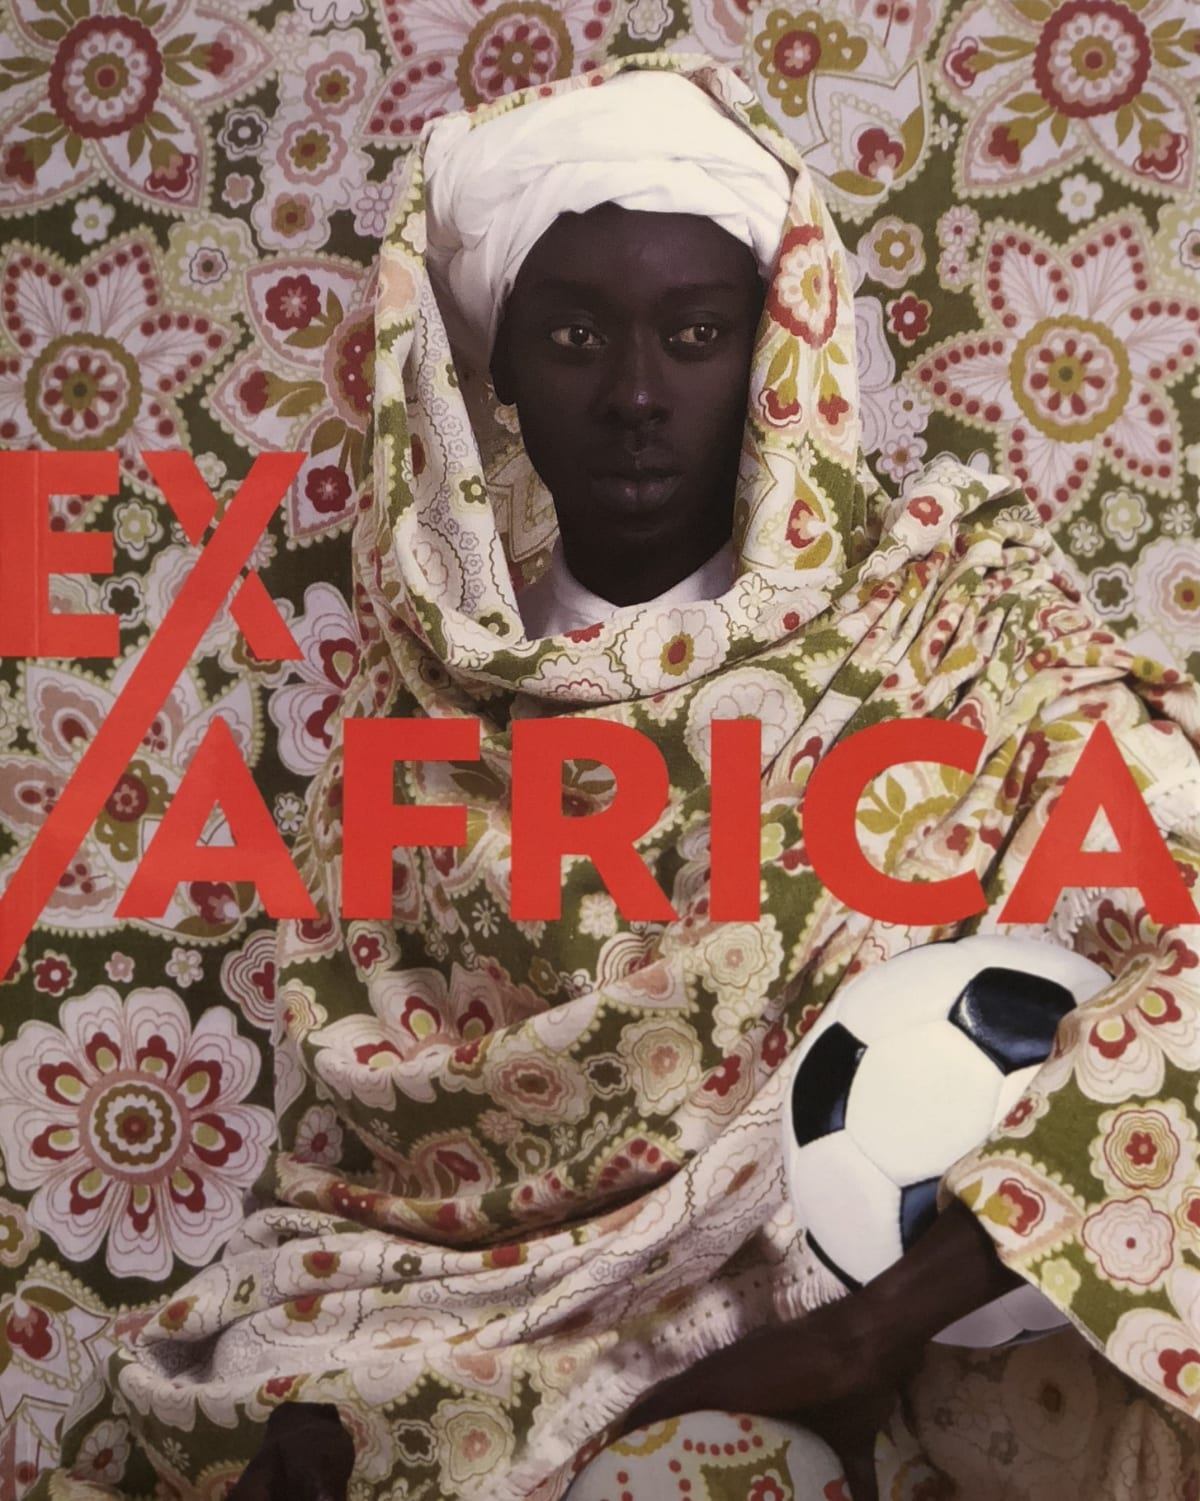 Ex Africa, curated by Alfons Hug